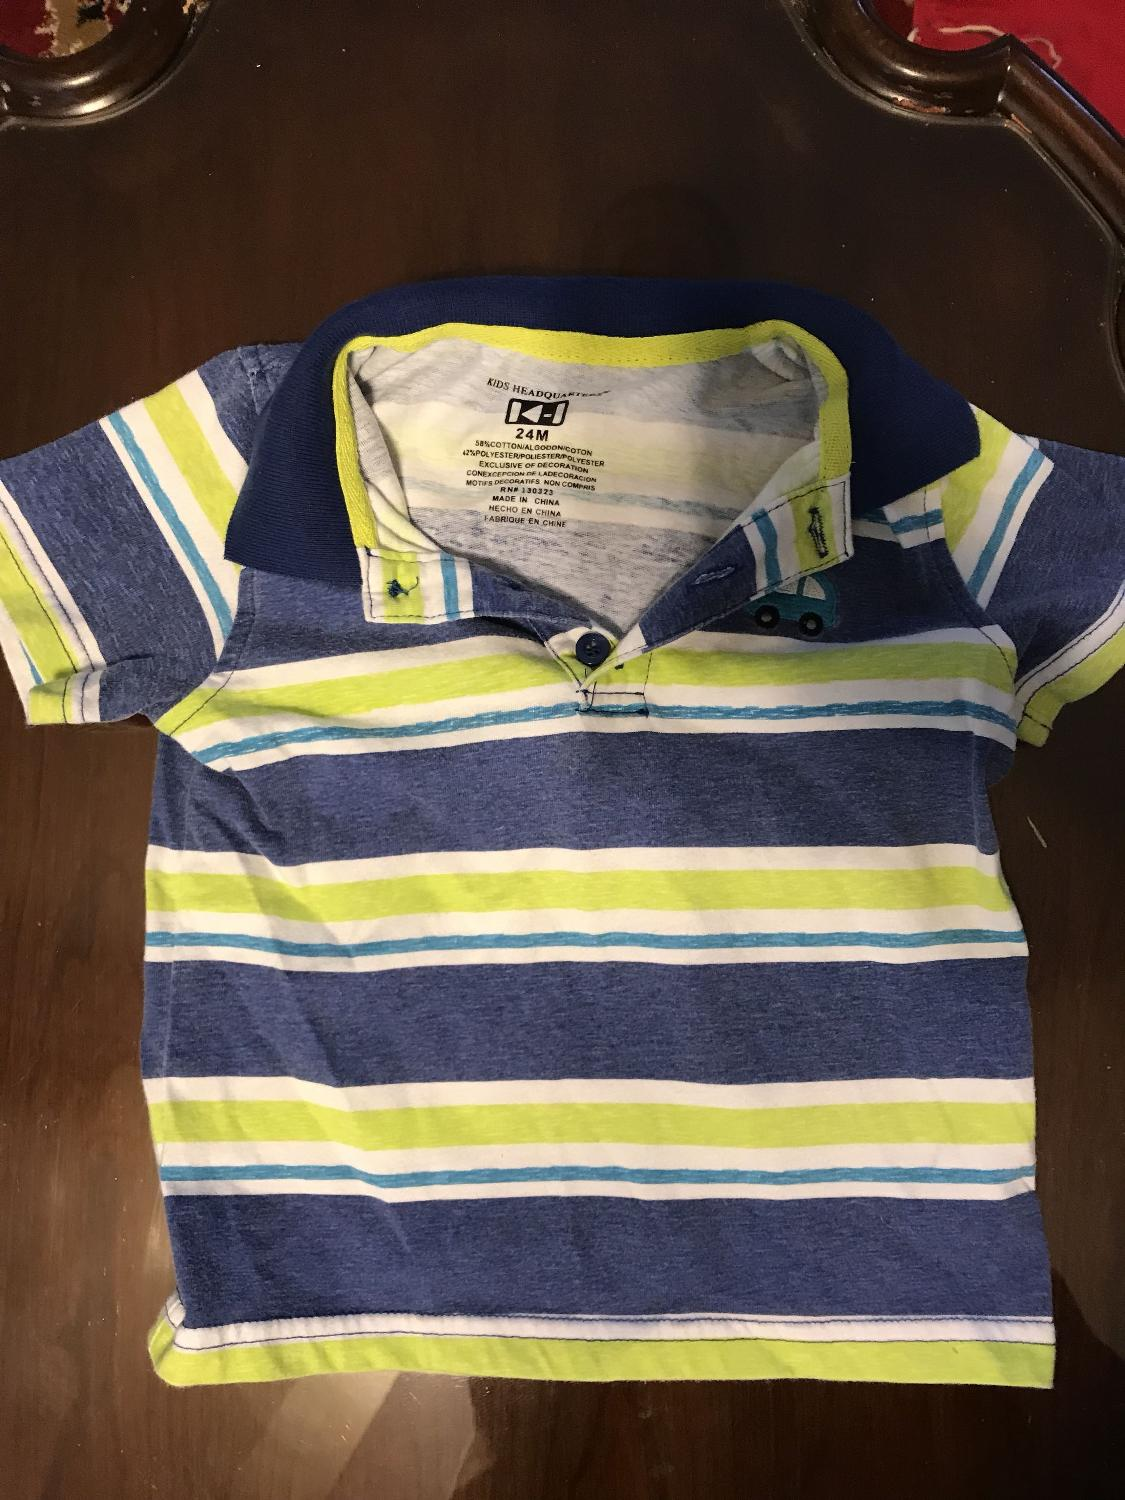 Best Boys Striped Polo Shirt Size 24m For Sale In Huntersville